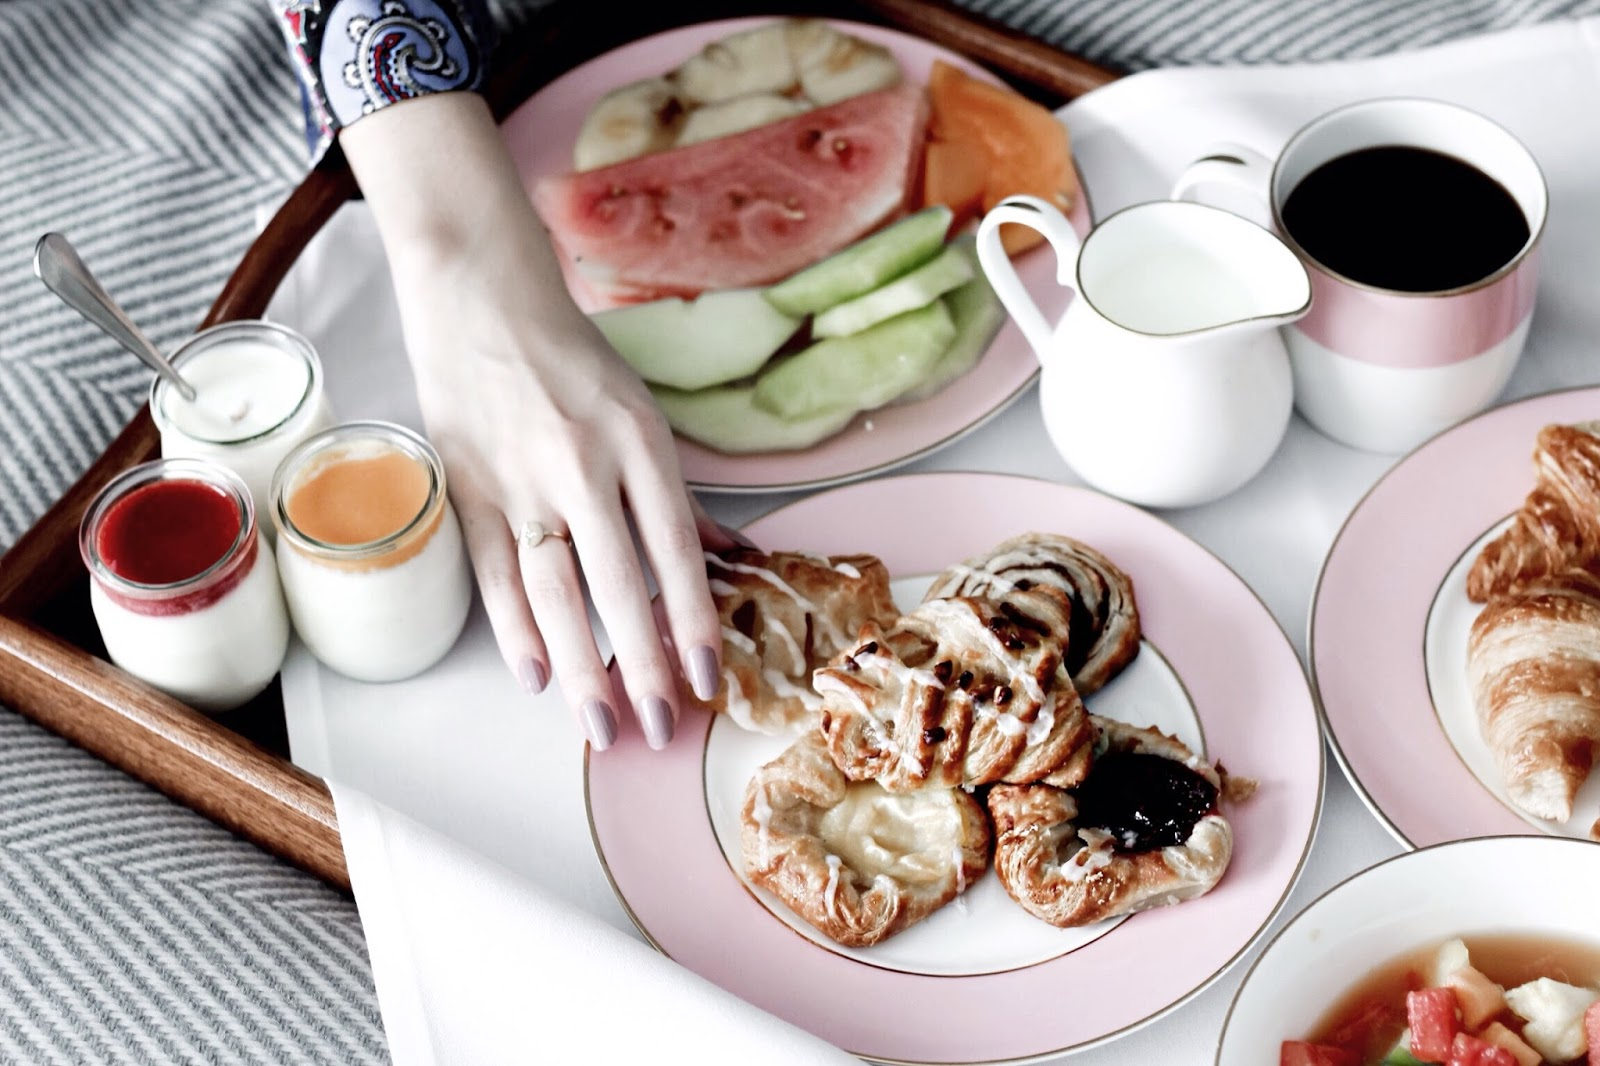 Pretty Pink Feminine Room Service Breakfast in the UK